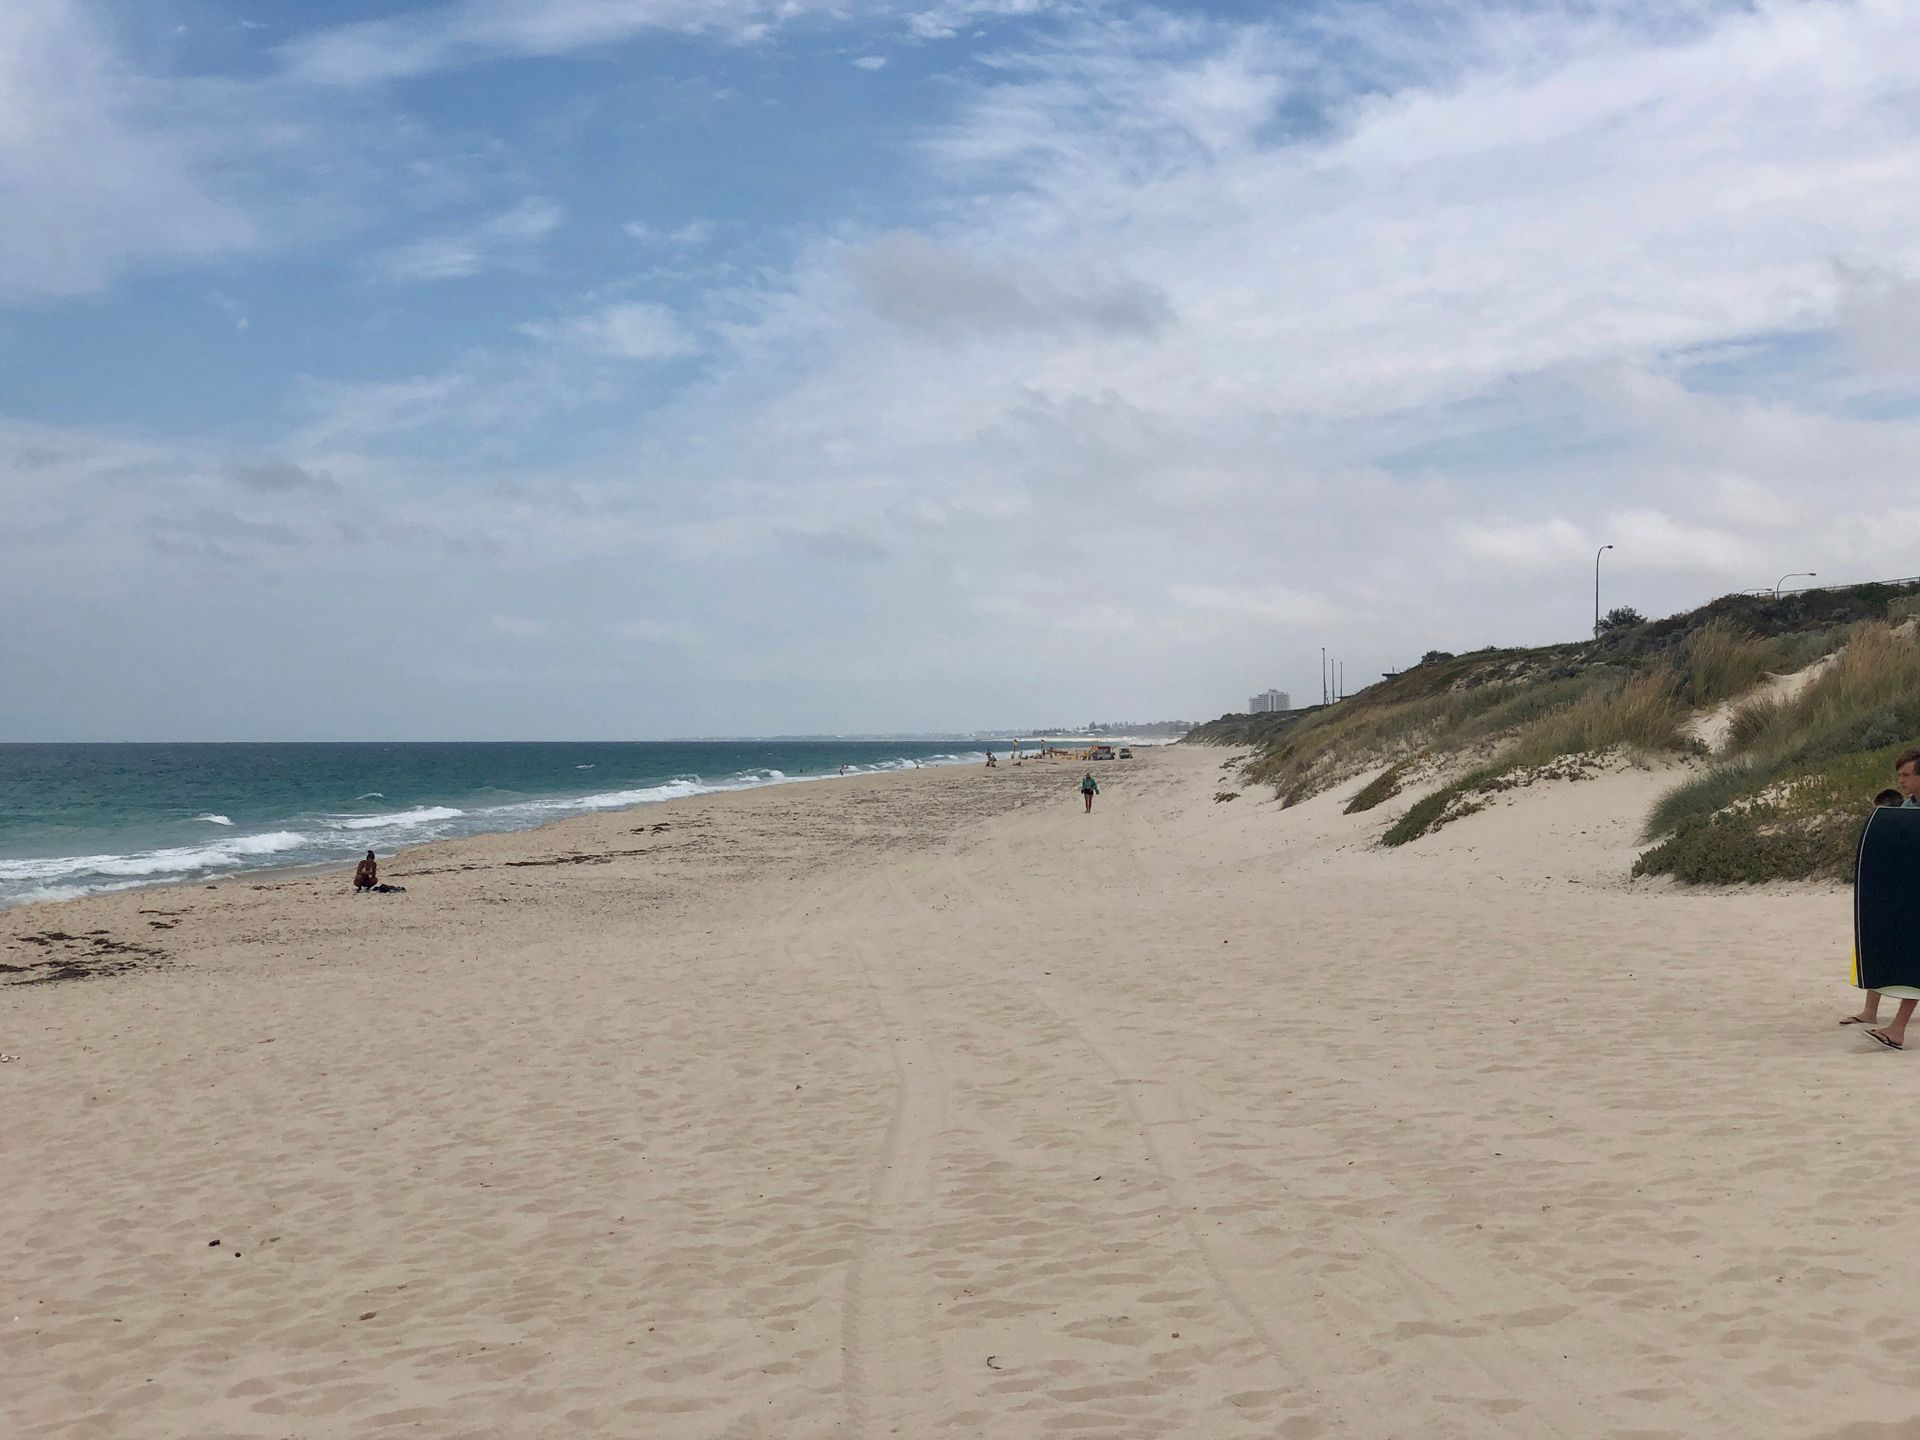 Downwind from Floreat Beach to Trigg Beach